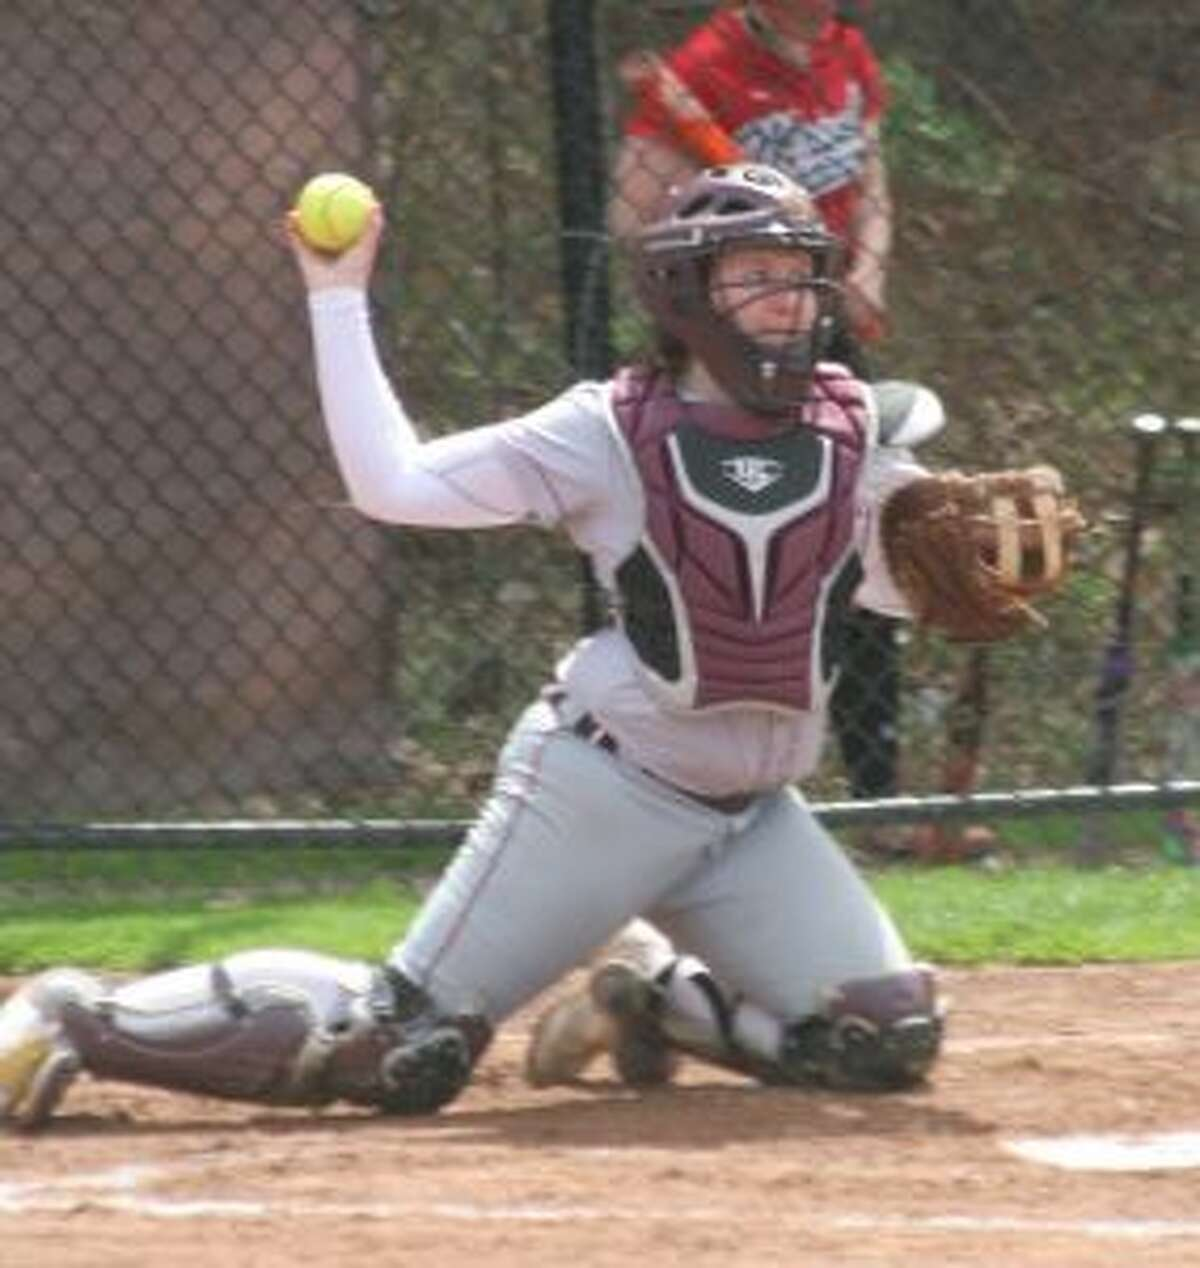 St. Joseph's Jovanna Hillman's home run ignited the attack for the Cadets in their 11-5 win over Watertown. - Bill Bloxsom photo